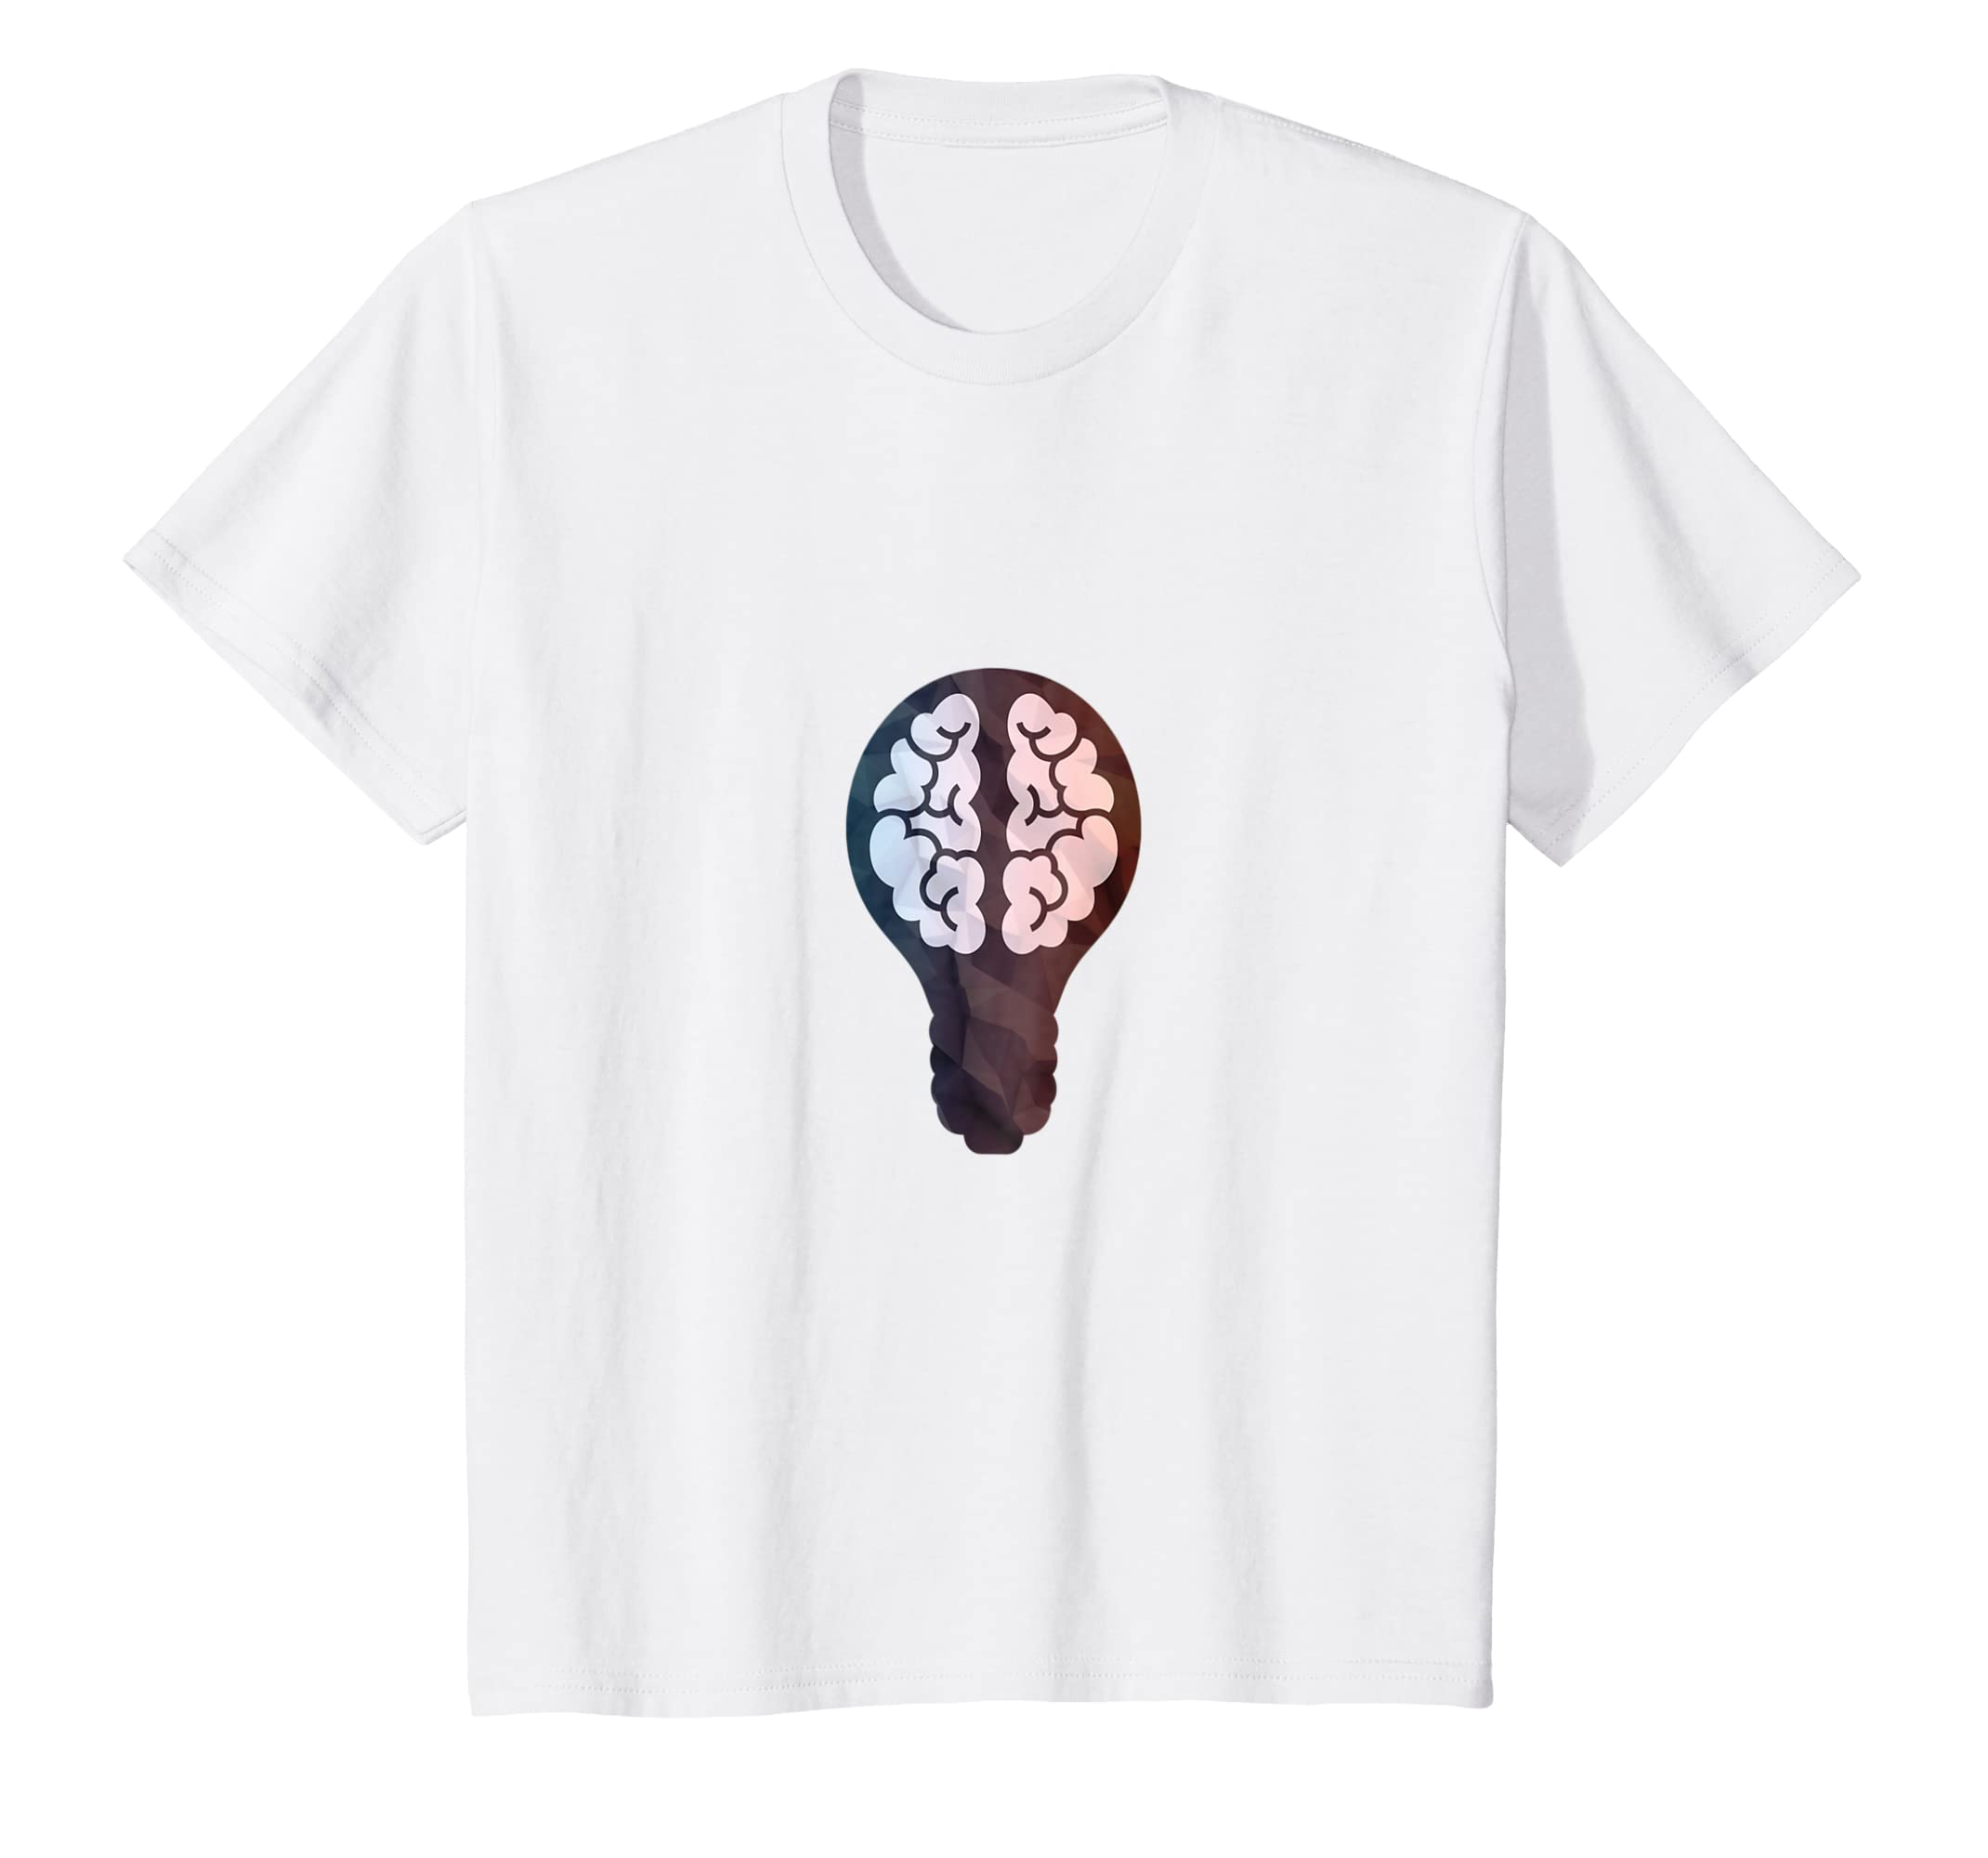 Amazon.com: Brain - Bulb T-Shirts - Idea Think Brain Light Bulb Shirts: Clothing